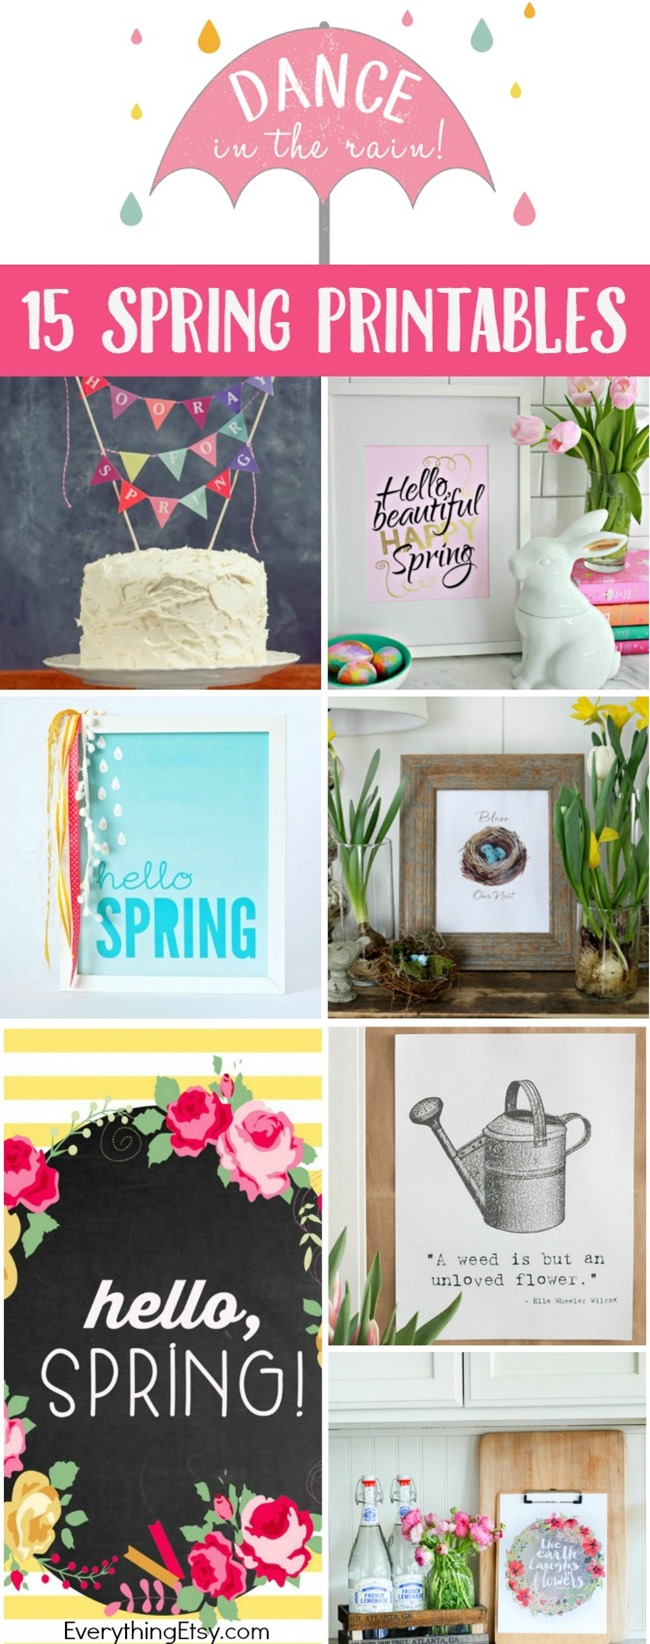 15 Free Spring Printable - DIY home awesomeness! - EverythingEtsy.com